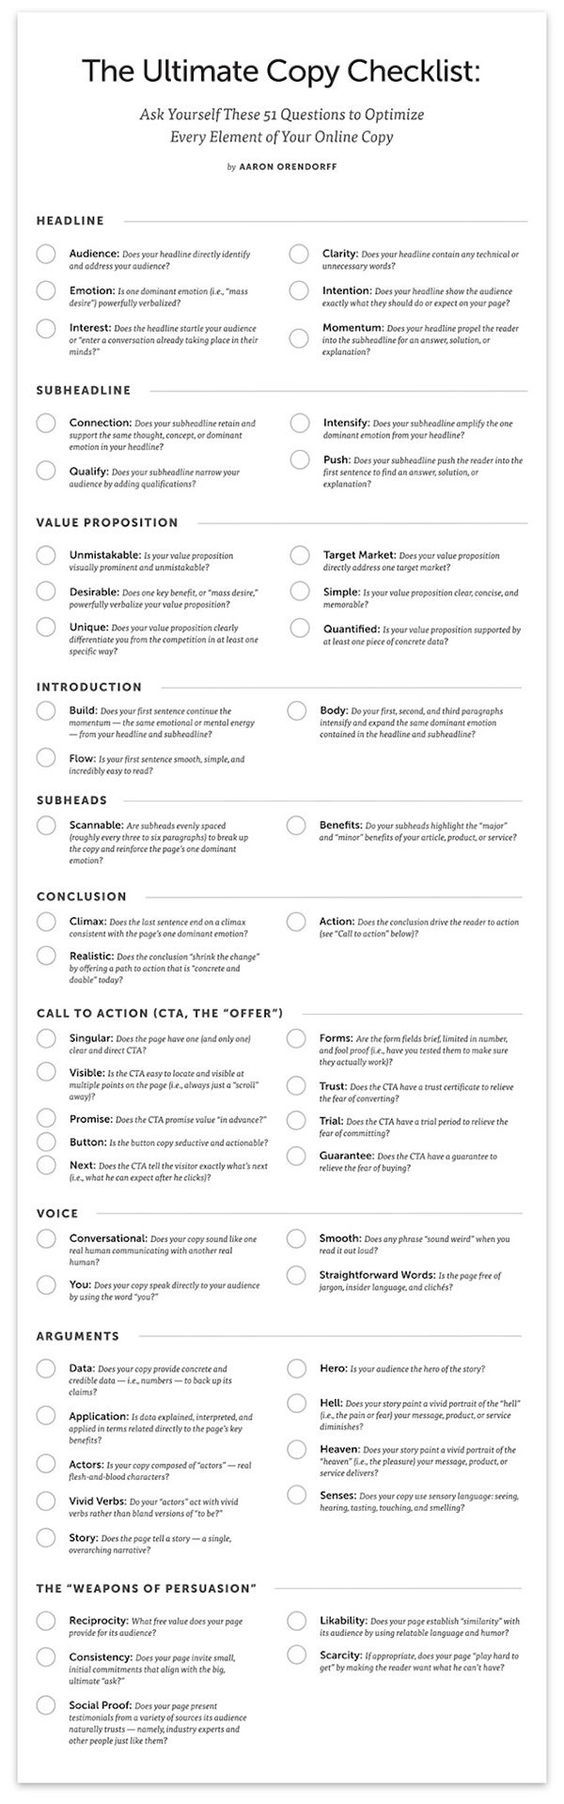 14 best write like a boss images on pinterest content marketing the ultimate copy checklist 51 questions to optimize every element of your online copy free poster fandeluxe Image collections